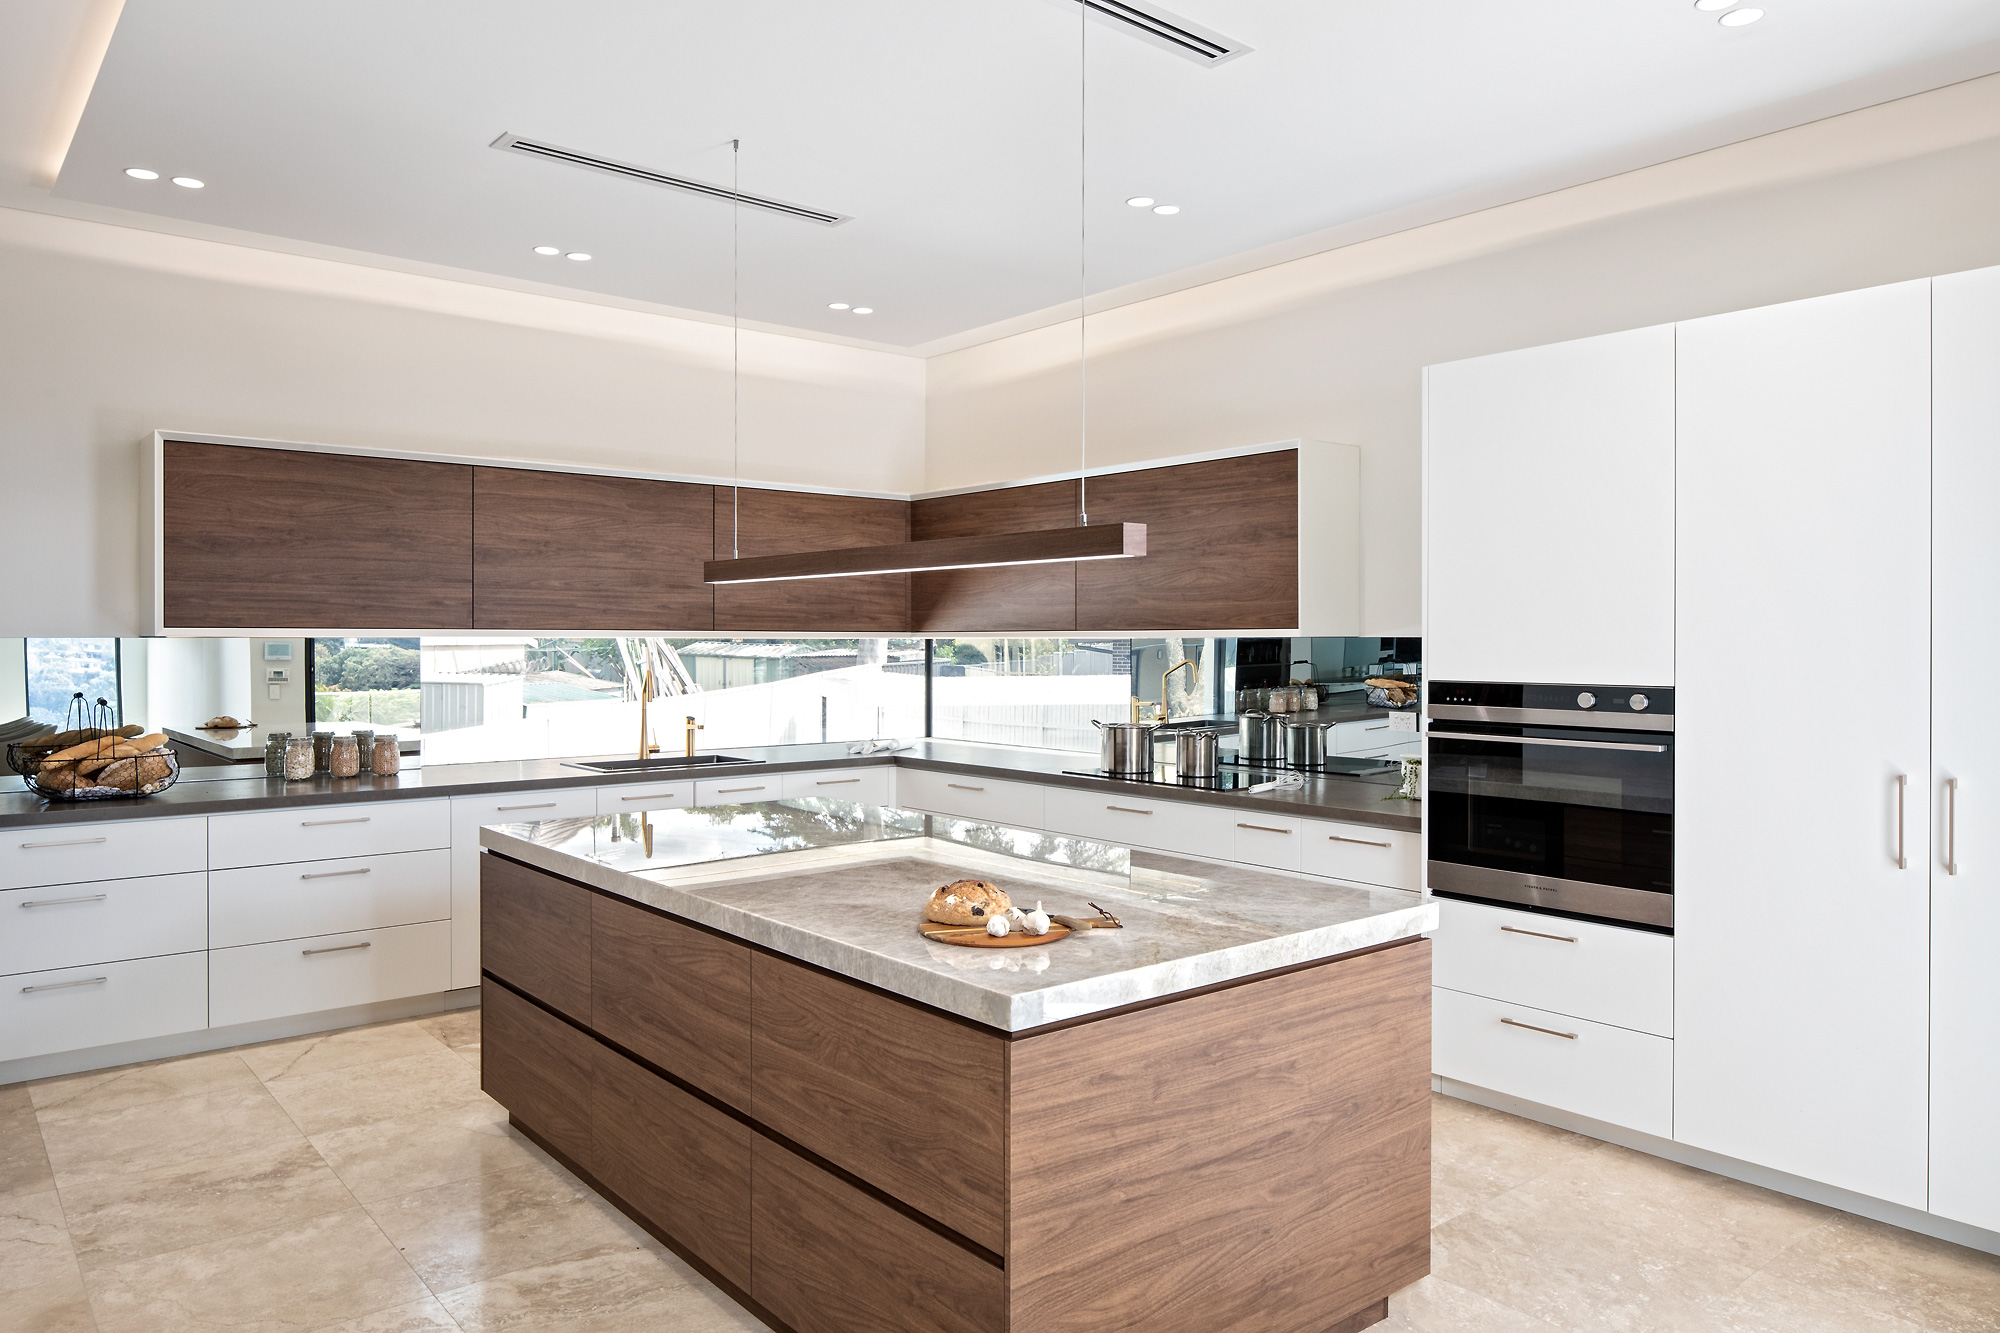 Best Modern Kitchen Designs Luxury Kitchen Renovations Cabinetry Huge Kitchen Showroom Kitchen Designers Indoor And Outdoor Alfresco Kitchens 30 Mins From Sydney Cbd